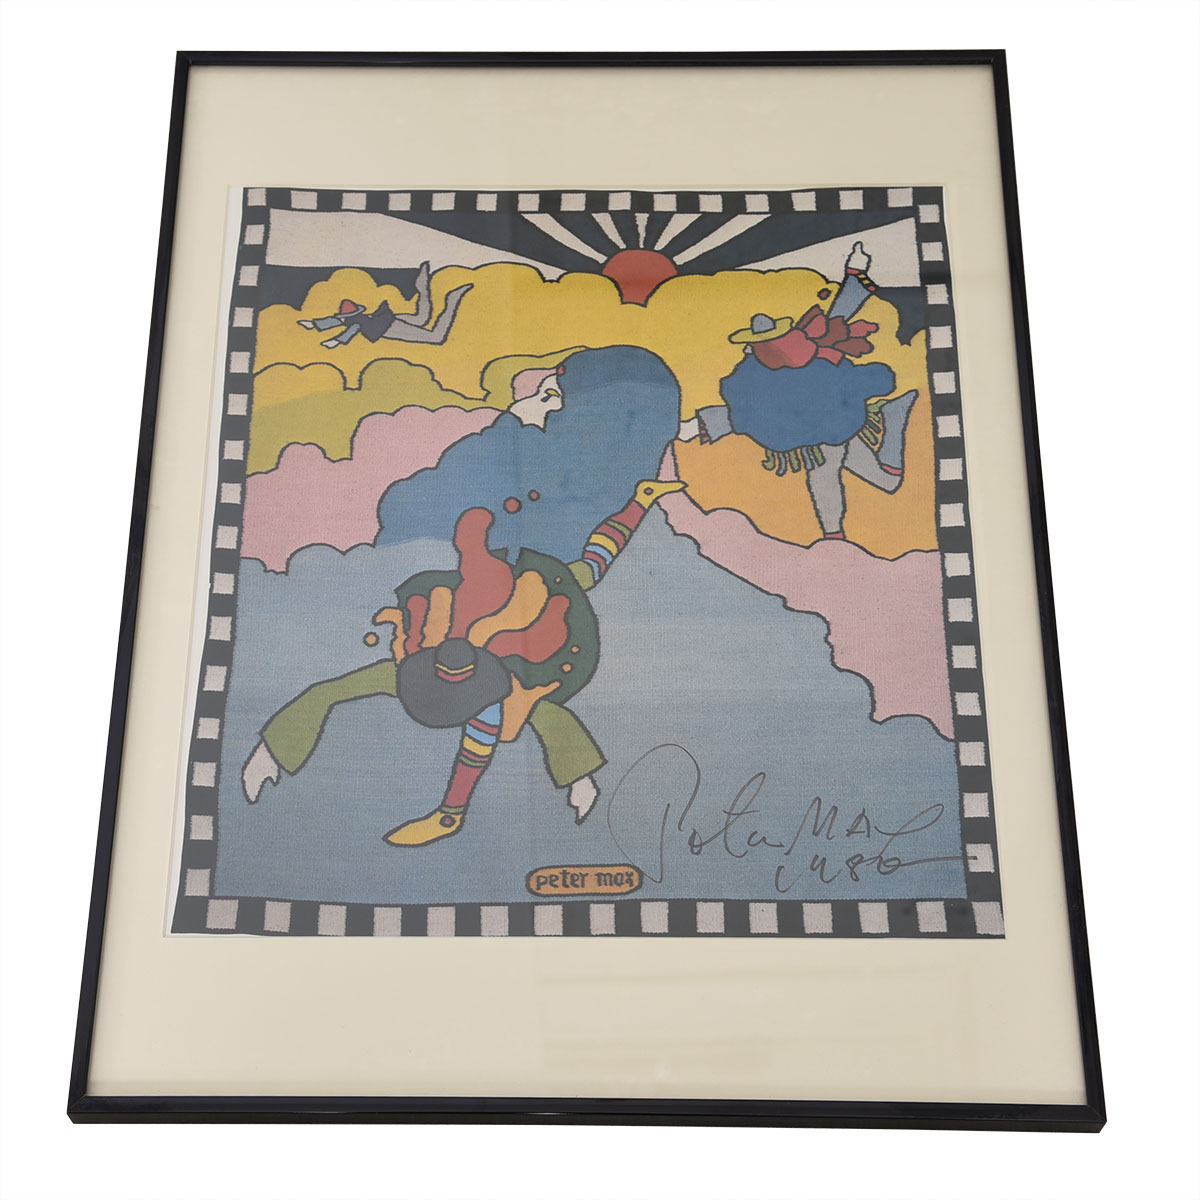 Vintage Signed Print/Poster by Peter Max